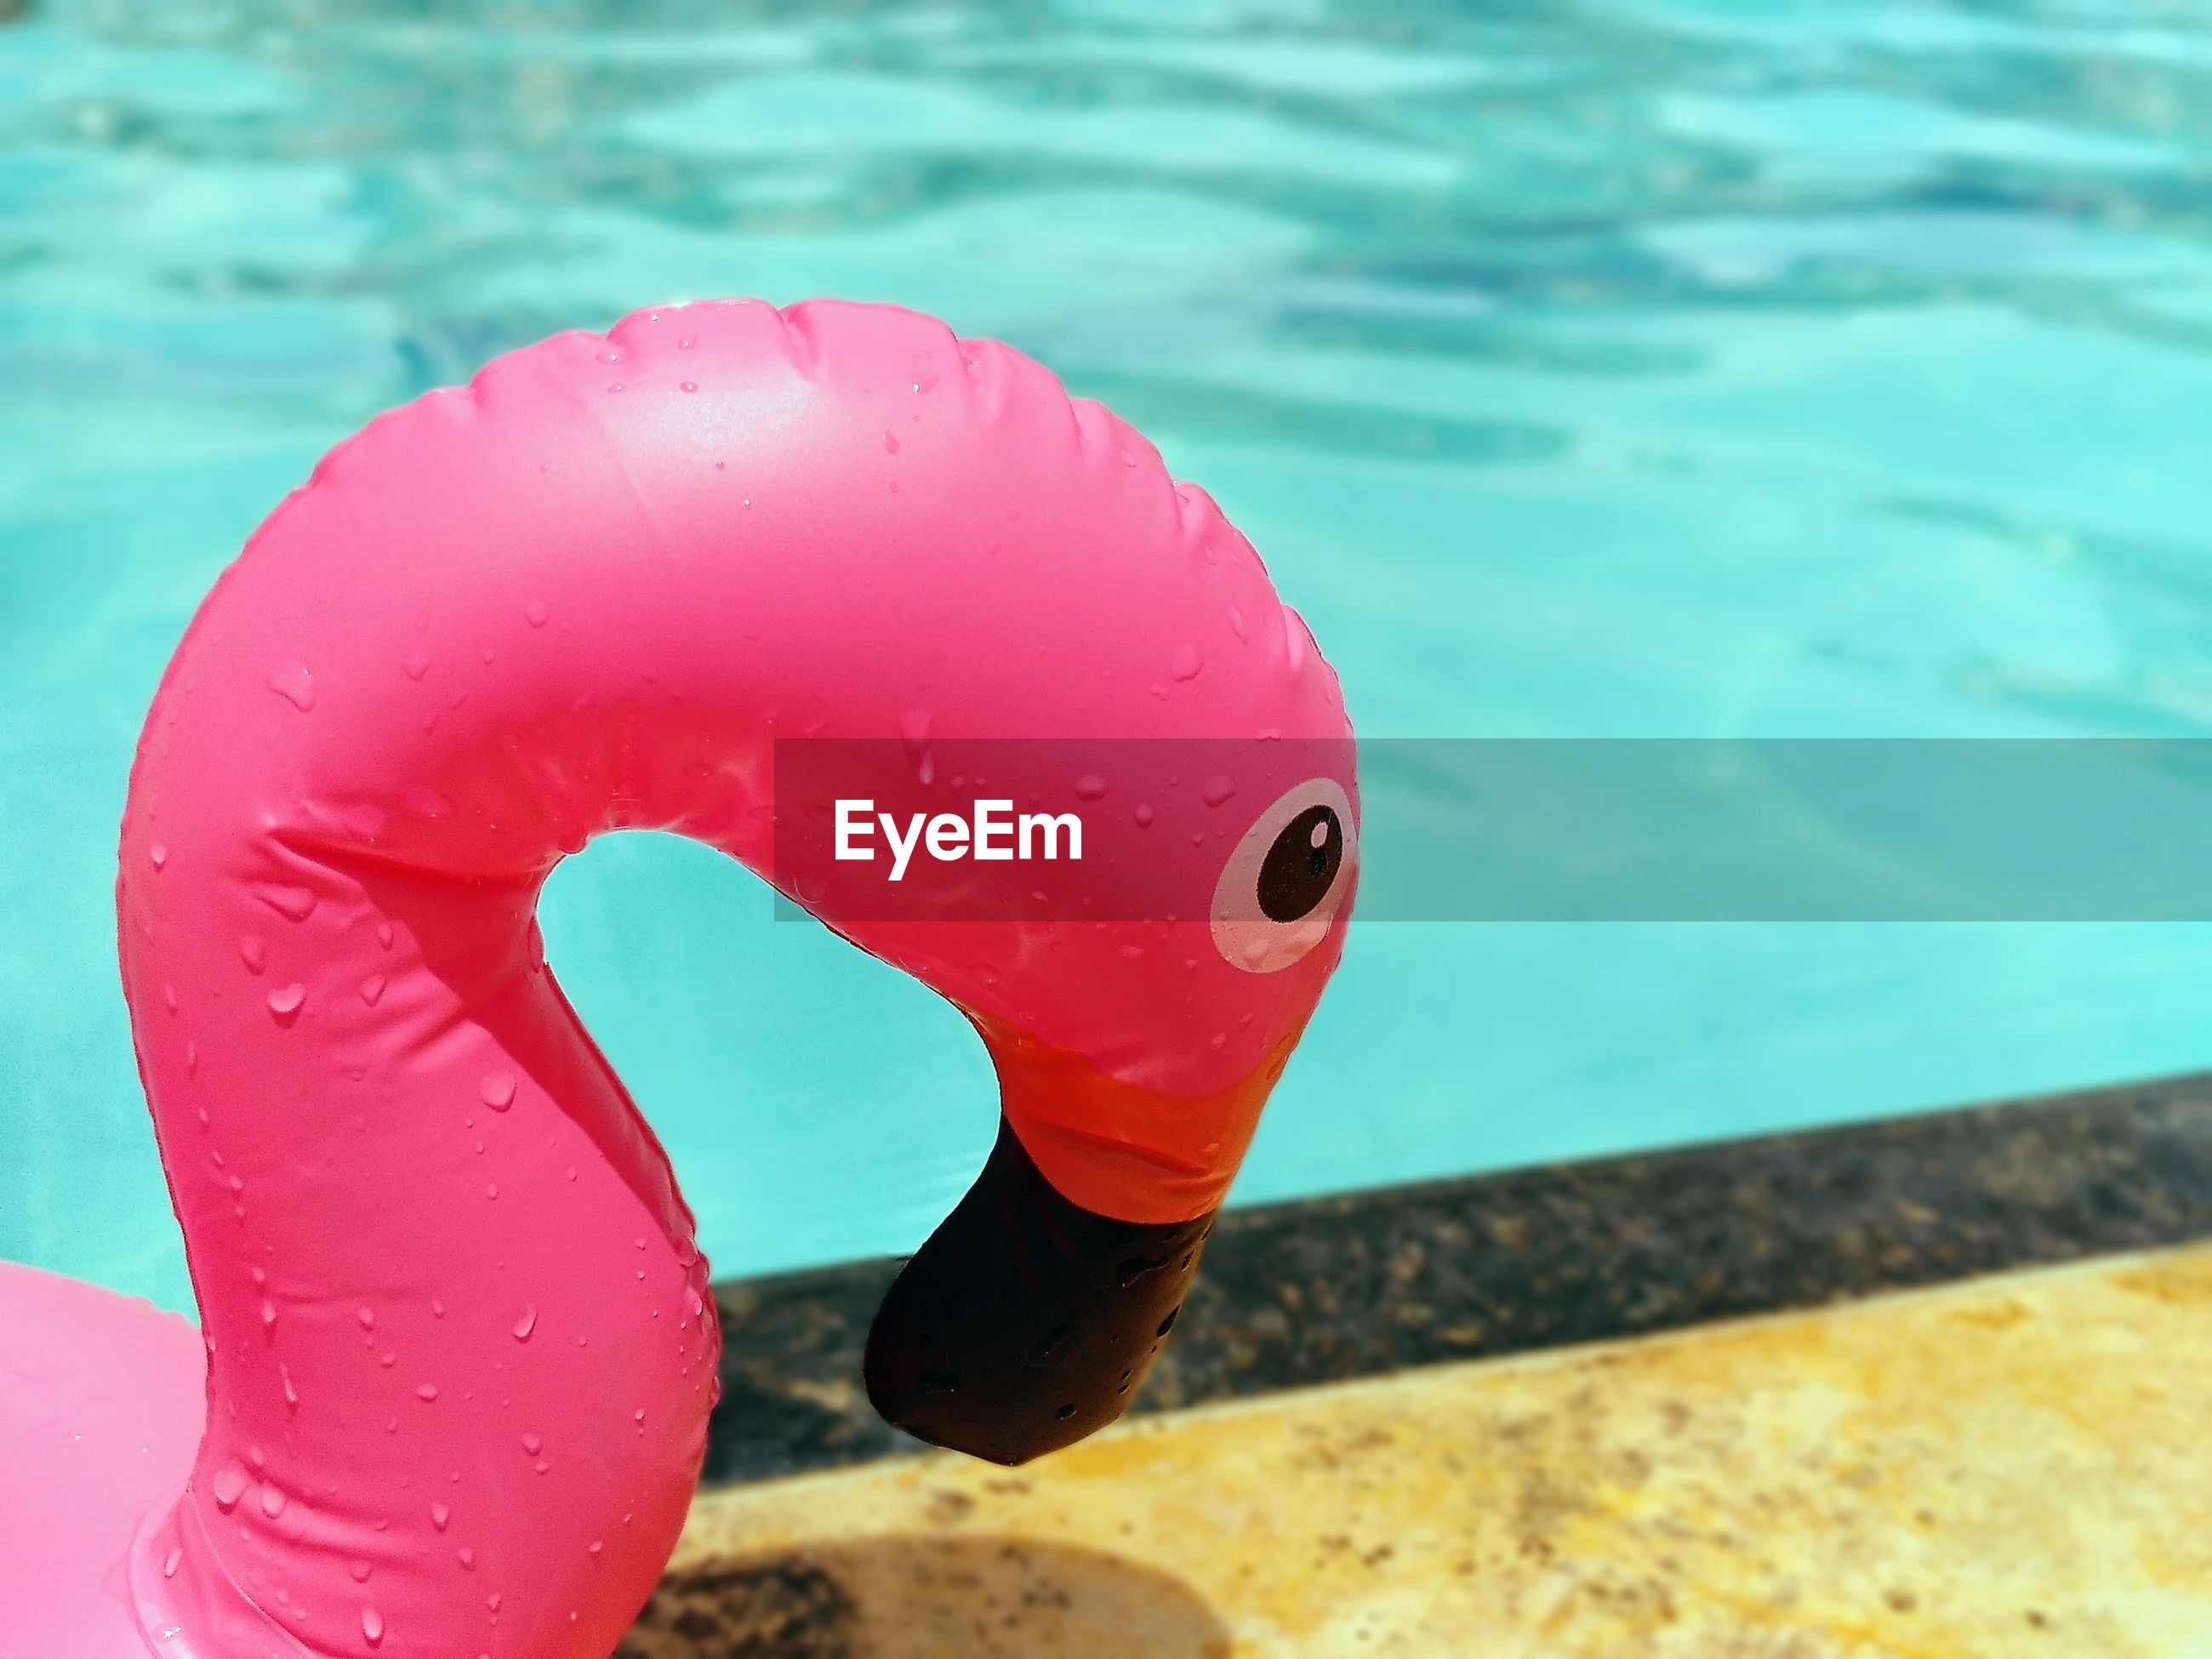 The head of a plastic flamingo by a poolside